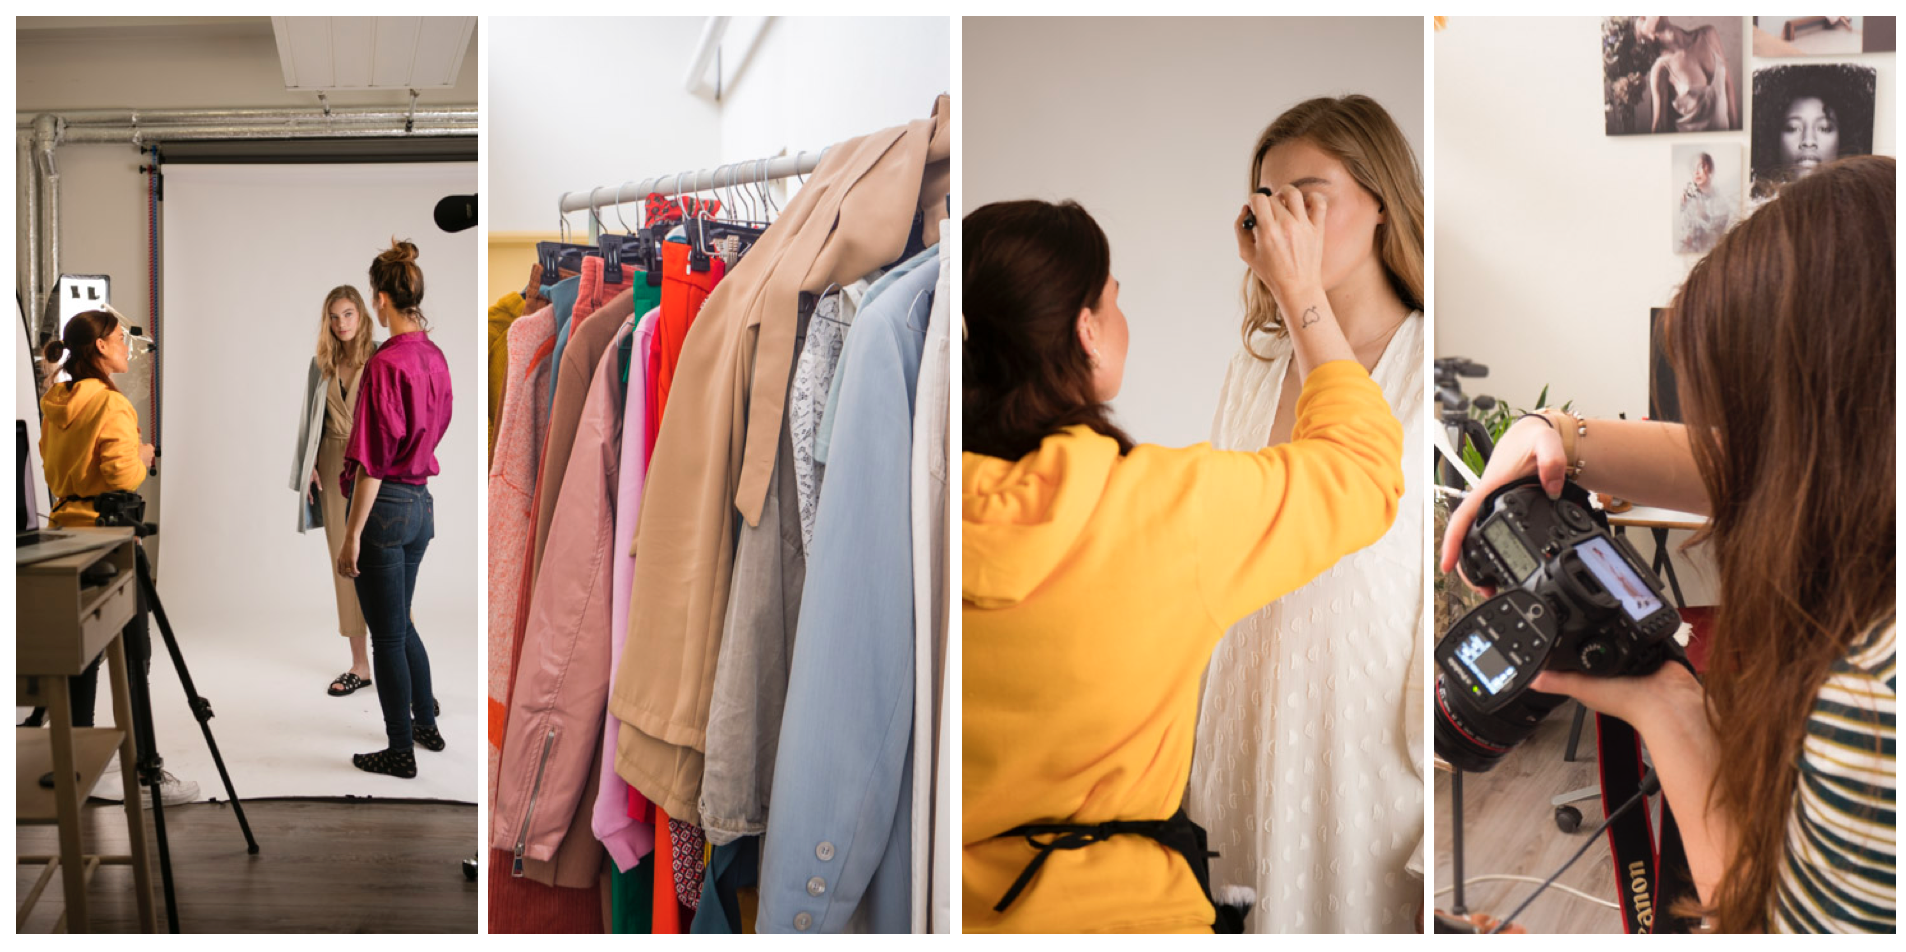 Backstage – Fashion editorial studio fotoshoot